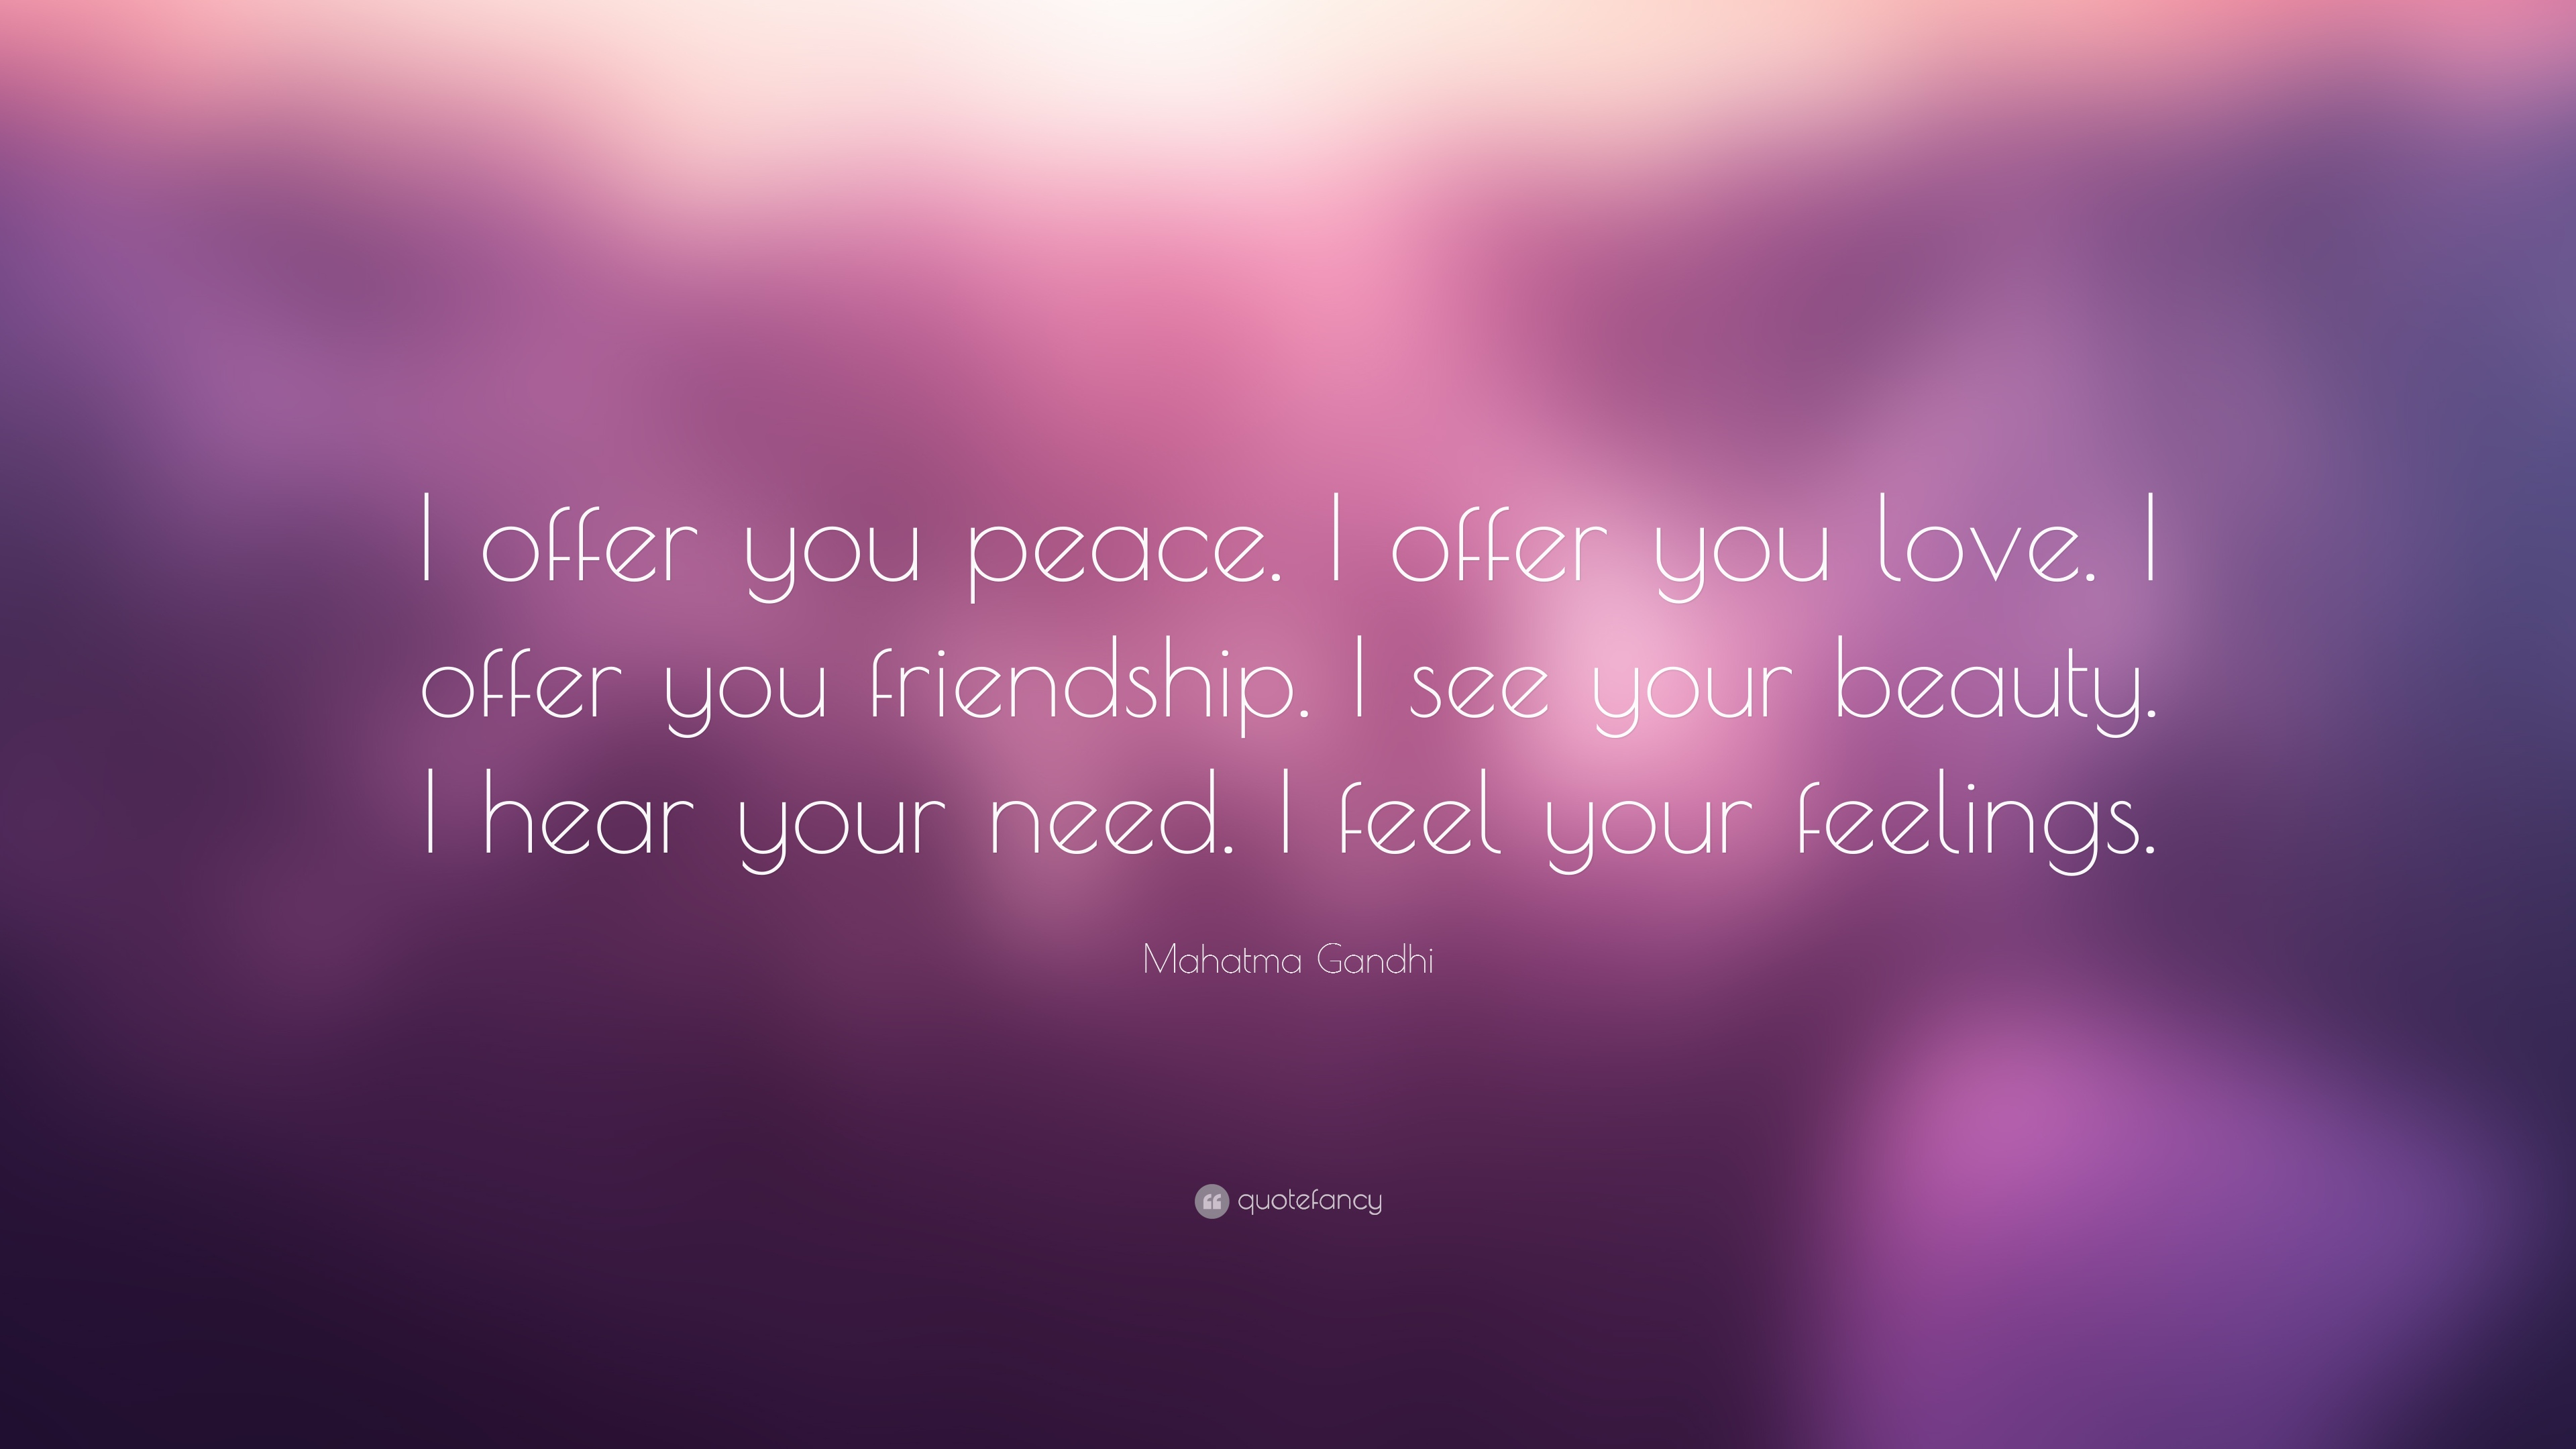 Quote About Peace And Love Peace Quotes 40 Wallpapers  Quotefancy